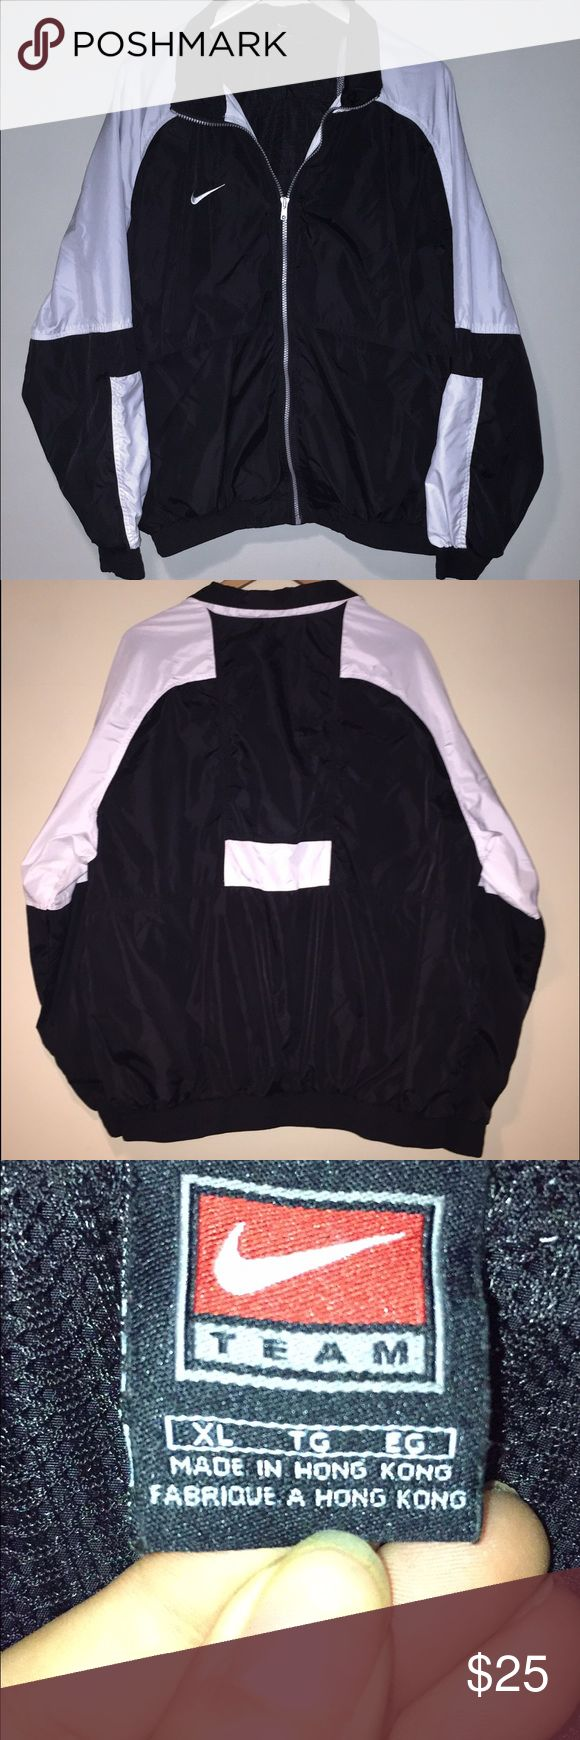 Men's Nike Windbreaker Men's XL Nike windbreaker with mesh lining. Perfect condition, no stains, runs, rips or tears. Looks great as an oversized jacket for women over a tight fitting dress with tall boots. Nike Jackets & Coats Utility Jackets